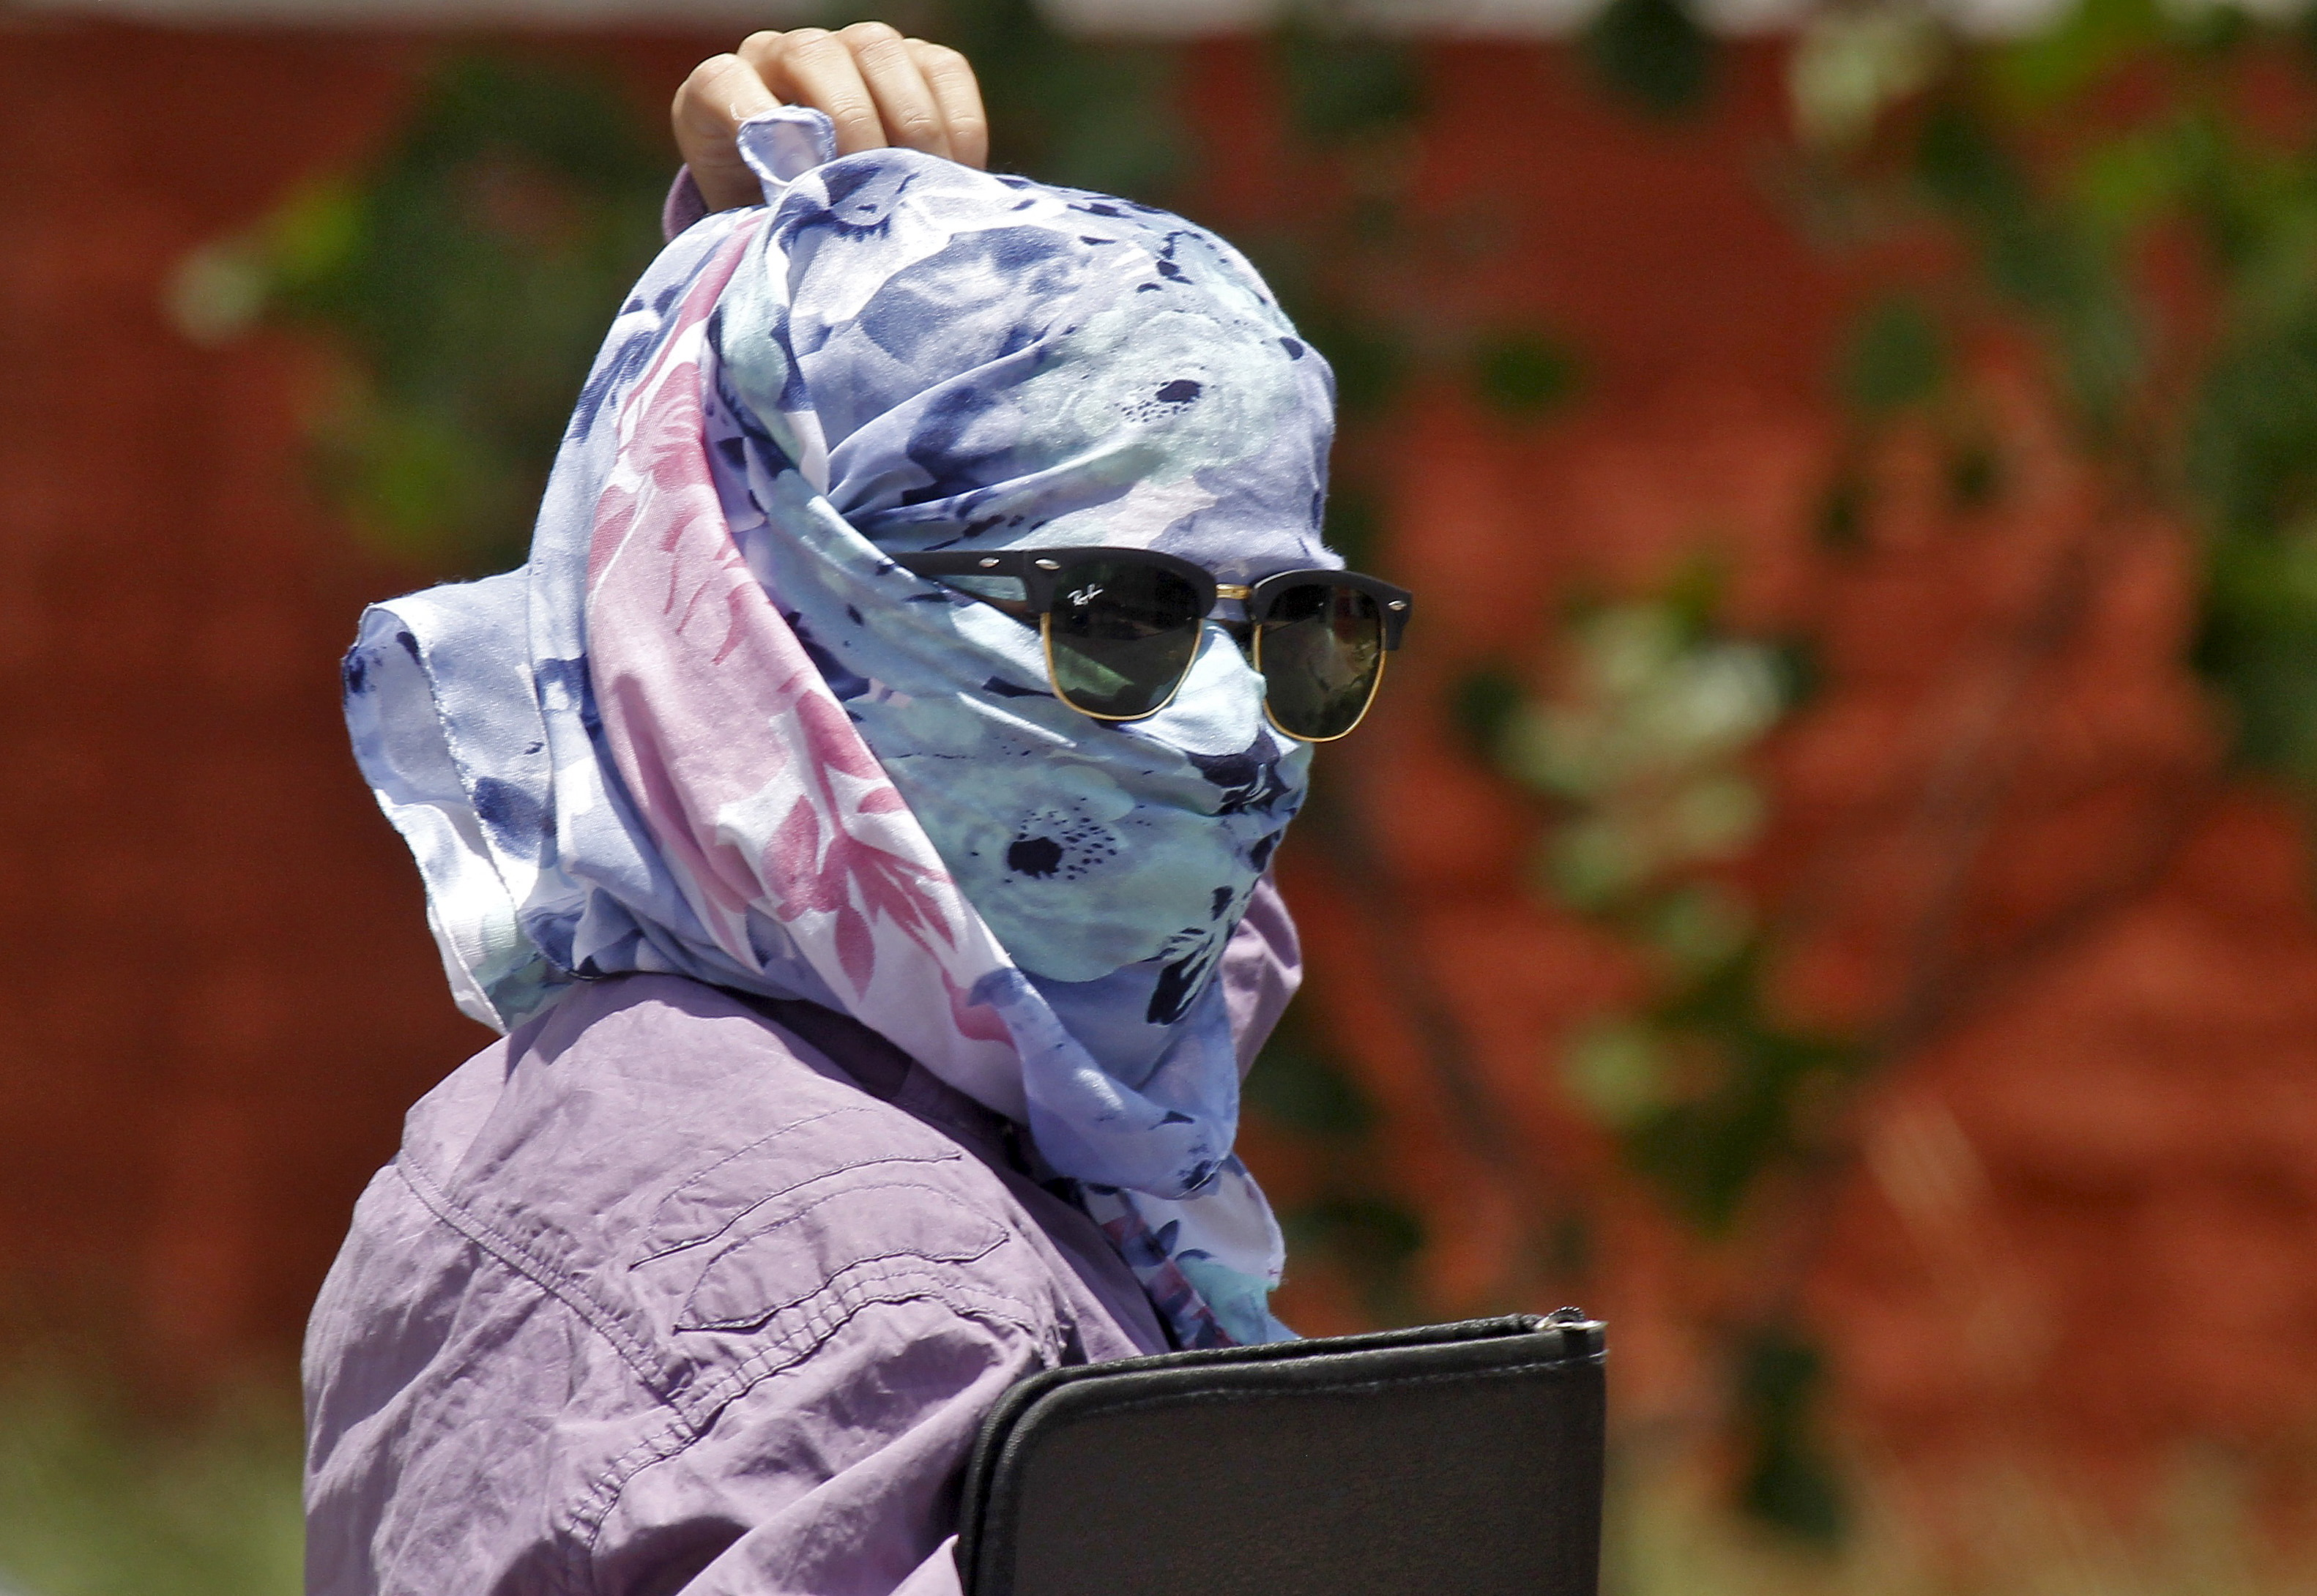 A woman walks along the road with her face covered to protect herself from sun stroke on a hot summer day in Chandigarh, India, May 28, 2015. Photo by Ajay Verma/Reuters